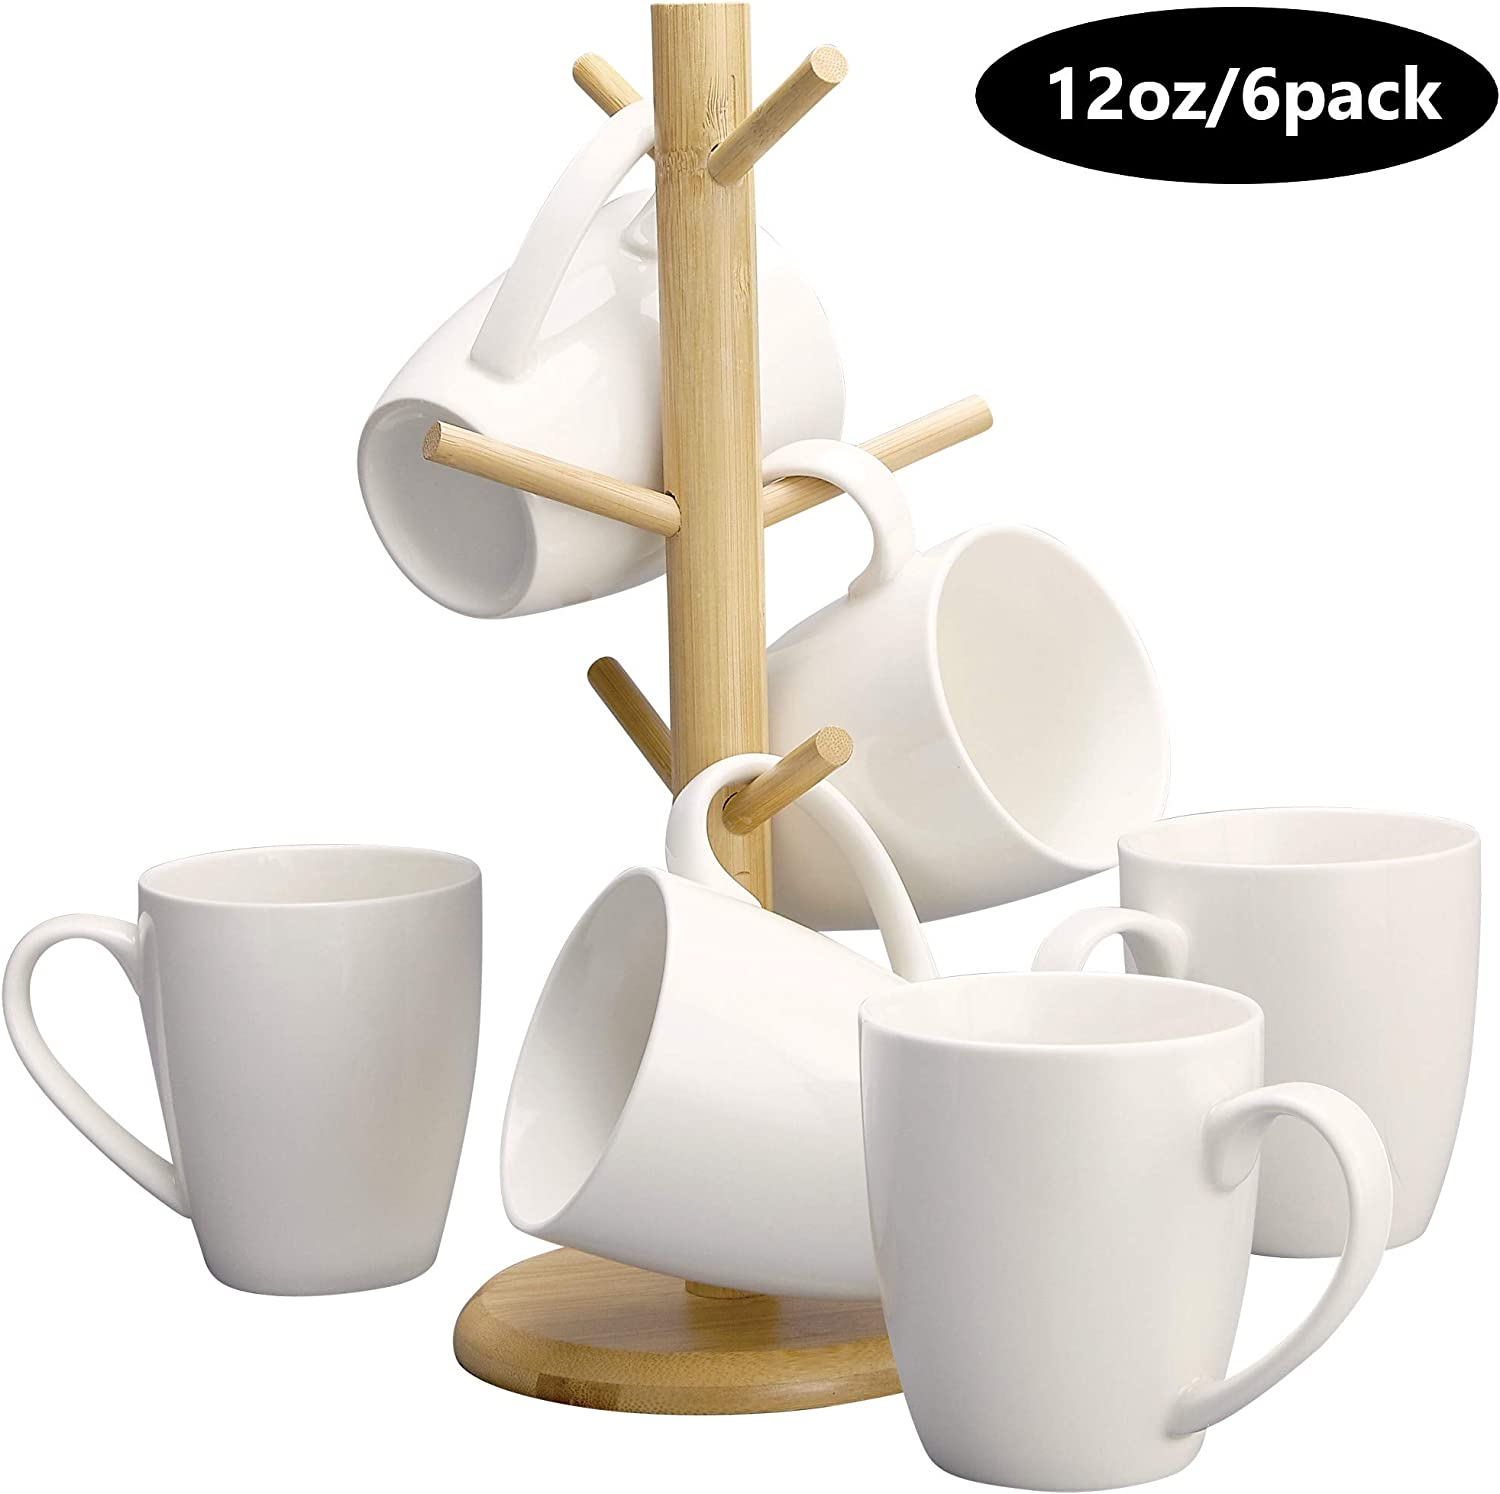 Coffee Mug Set Of 6 Ceramic Coffee Cups 12 oz. Elegant White With A Free Stand - Mug Holder Tree - Wood Organizer Rack with 6 Hook Hangers - Cup Stand For Kitchen Counter Tops - By DecorDine